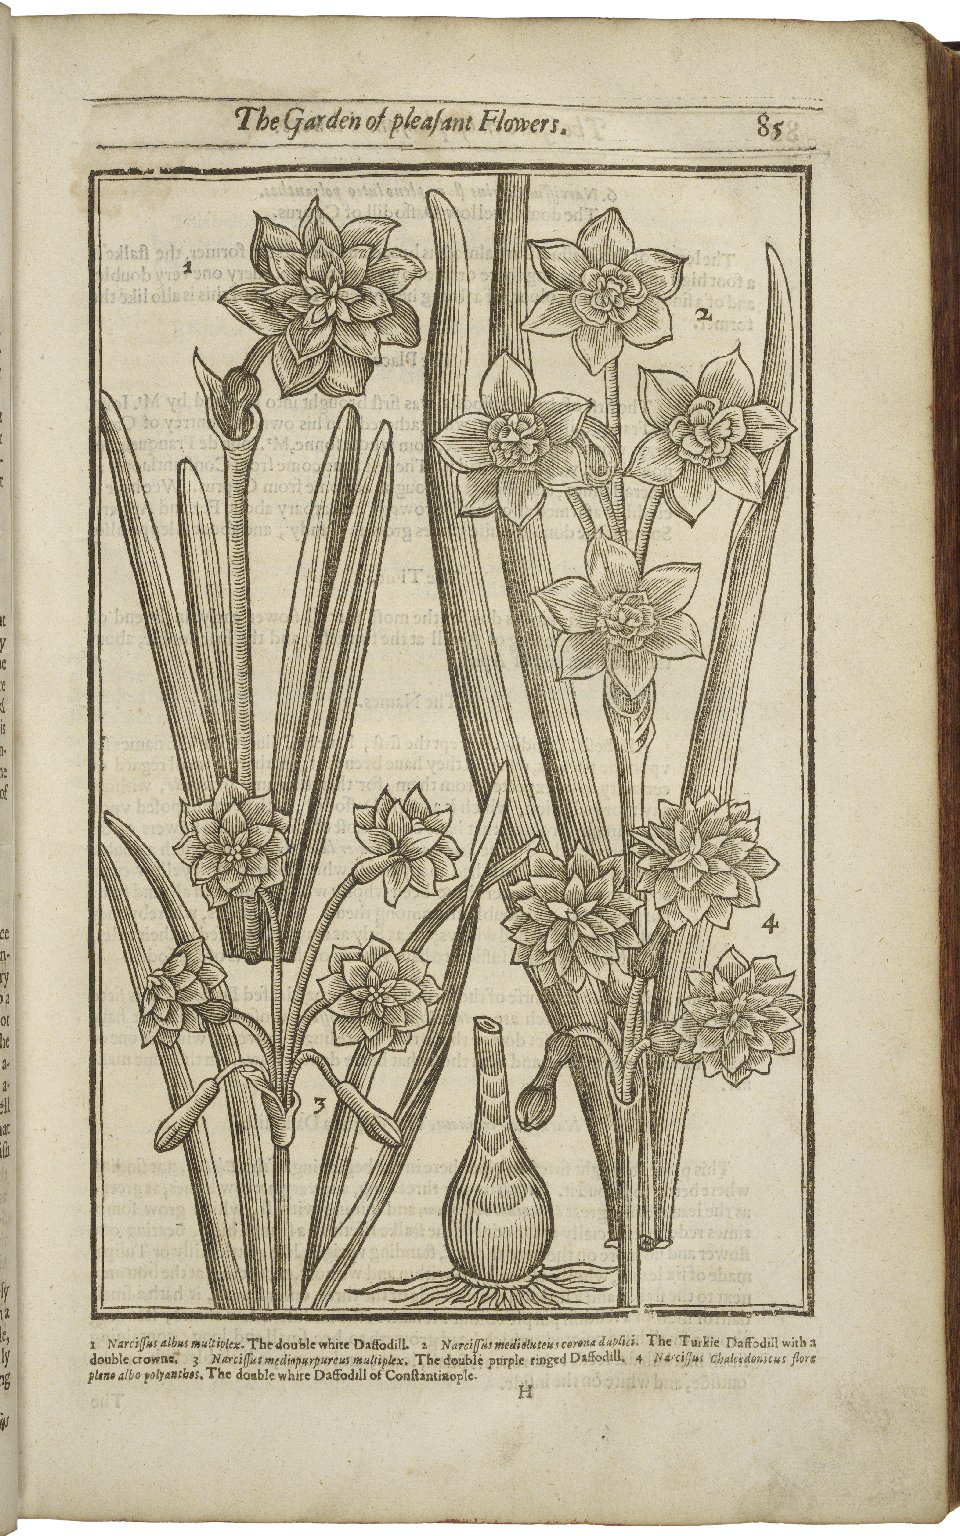 Paradisi in sole paradisus terrestris. or A garden of all sorts of pleasant flowers which our English ayre will permitt to be noursed vp: with a kitchen garden of all manner of herbes, rootes, & fruites, for meate or sause vsed with vs, and an orchard of